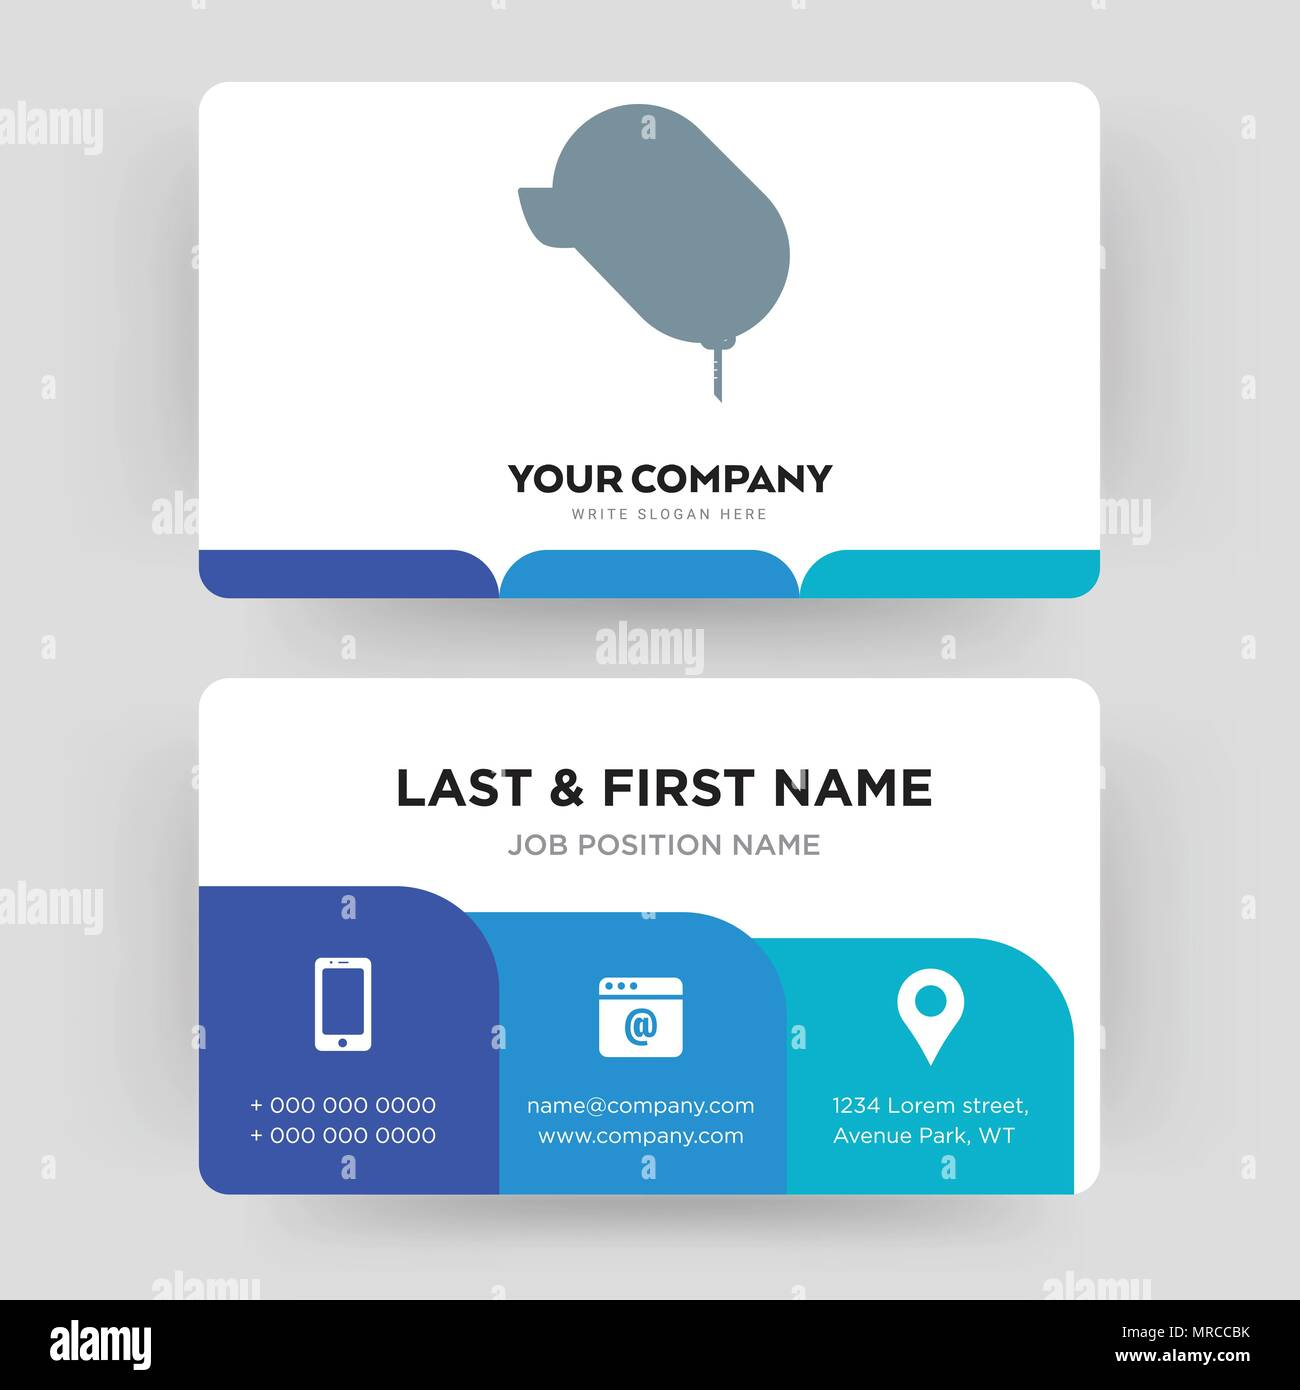 car dealer, business card design template, Visiting for your company ...